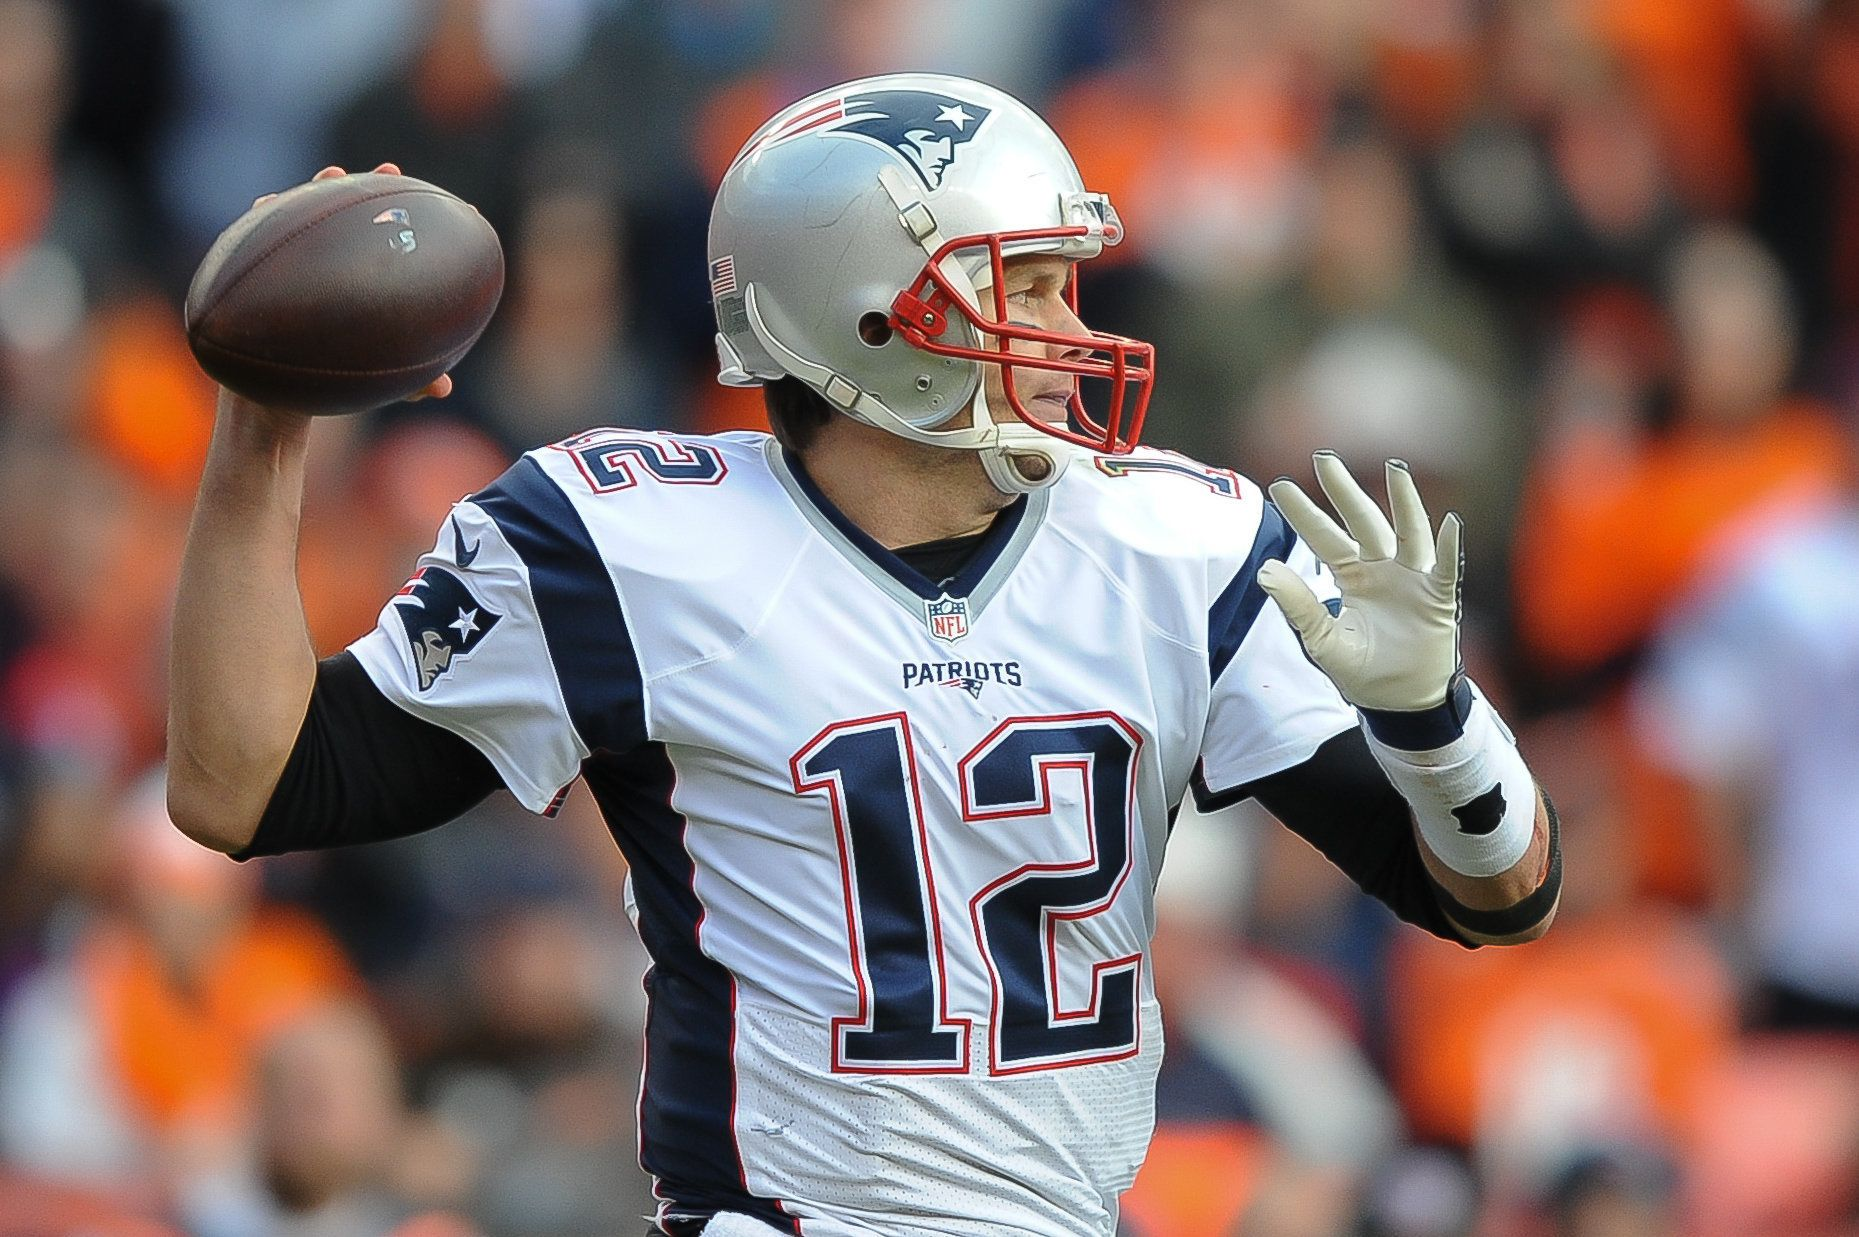 DENVER, CO - JANUARY 24: Tom Brady #12 of the New England Patriots passes against the Denver Broncos   in the AFC Championship game at Sports Authority Field at Mile High on January 24, 2016 in Denver, Colorado.  (Photo by Dustin Bradford/Getty Images)